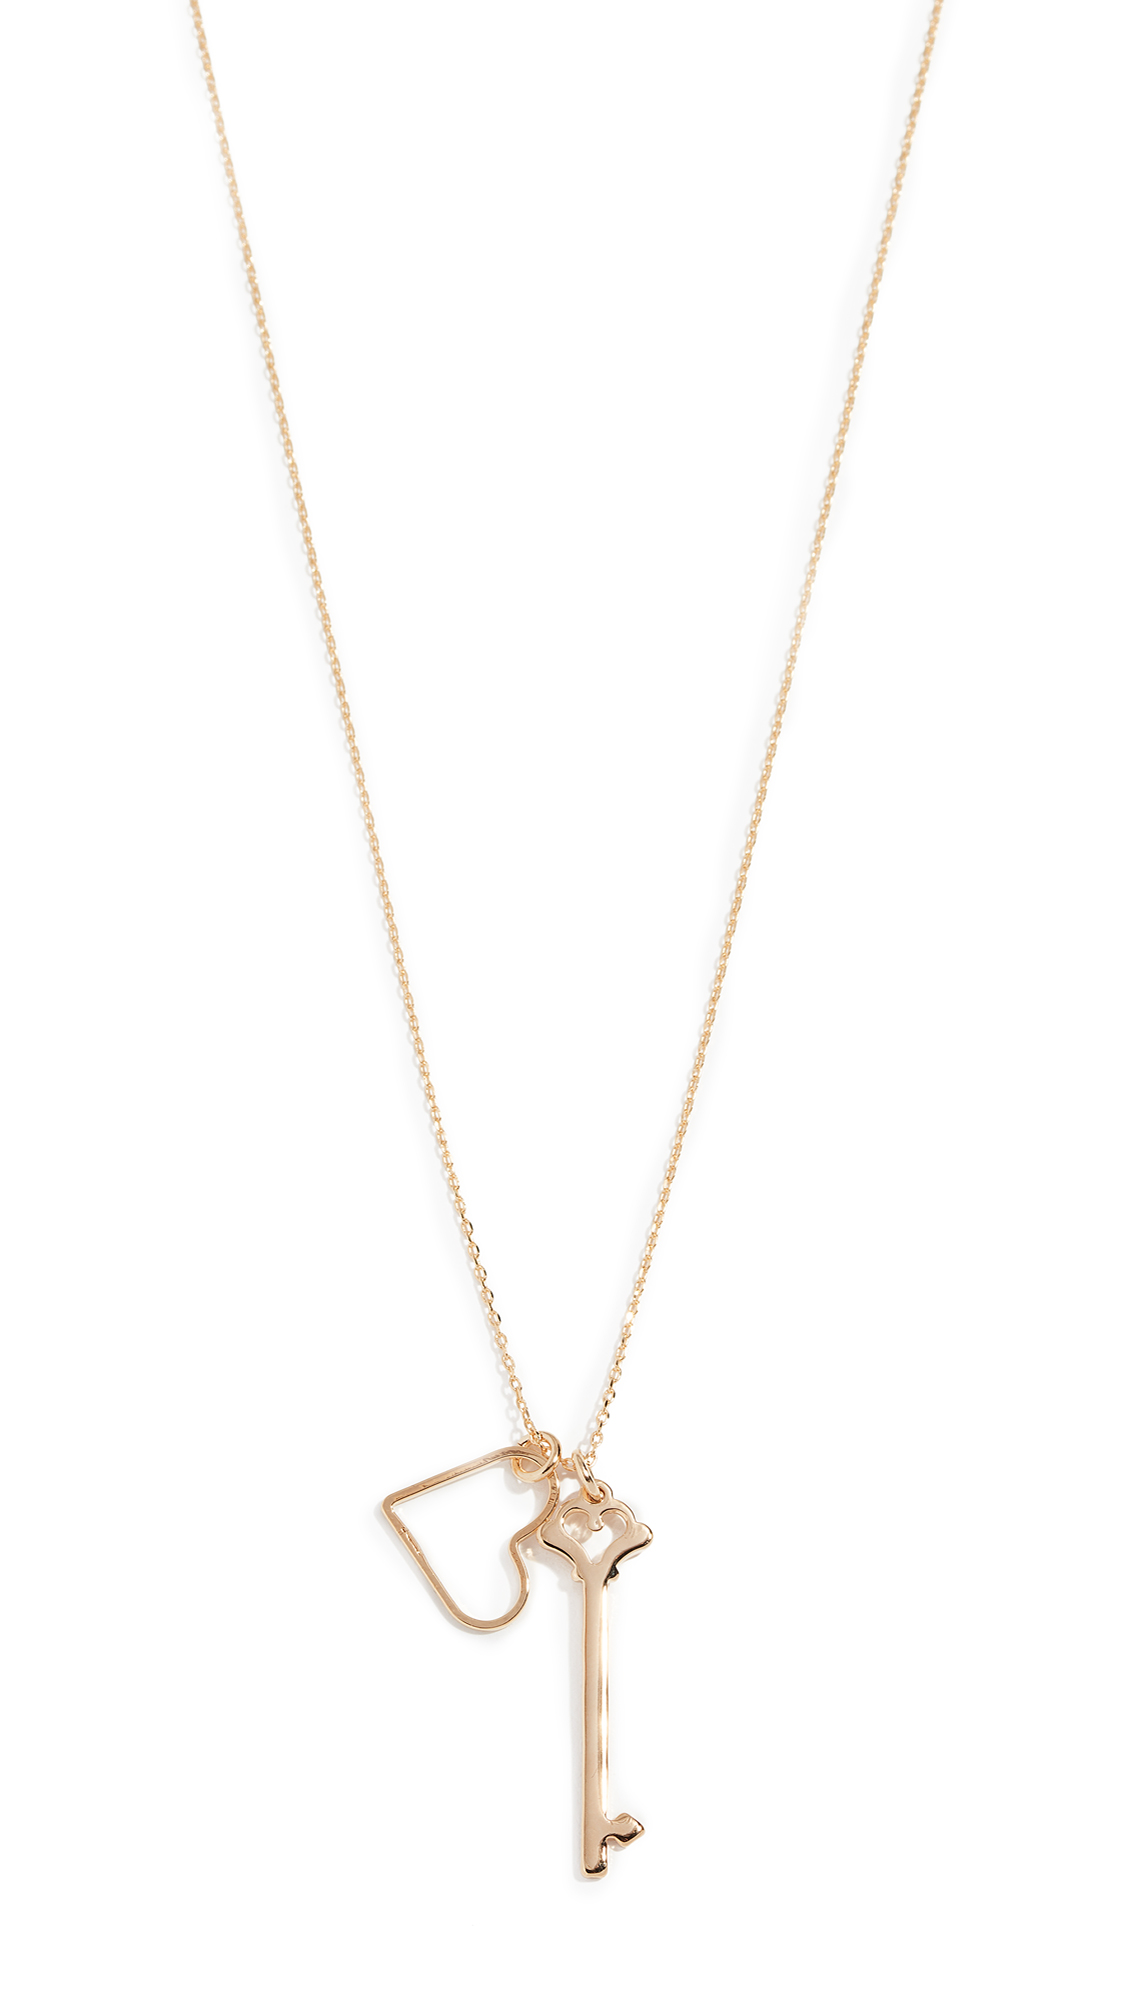 CLOVERPOST Devotion Necklace in Yellow Gold